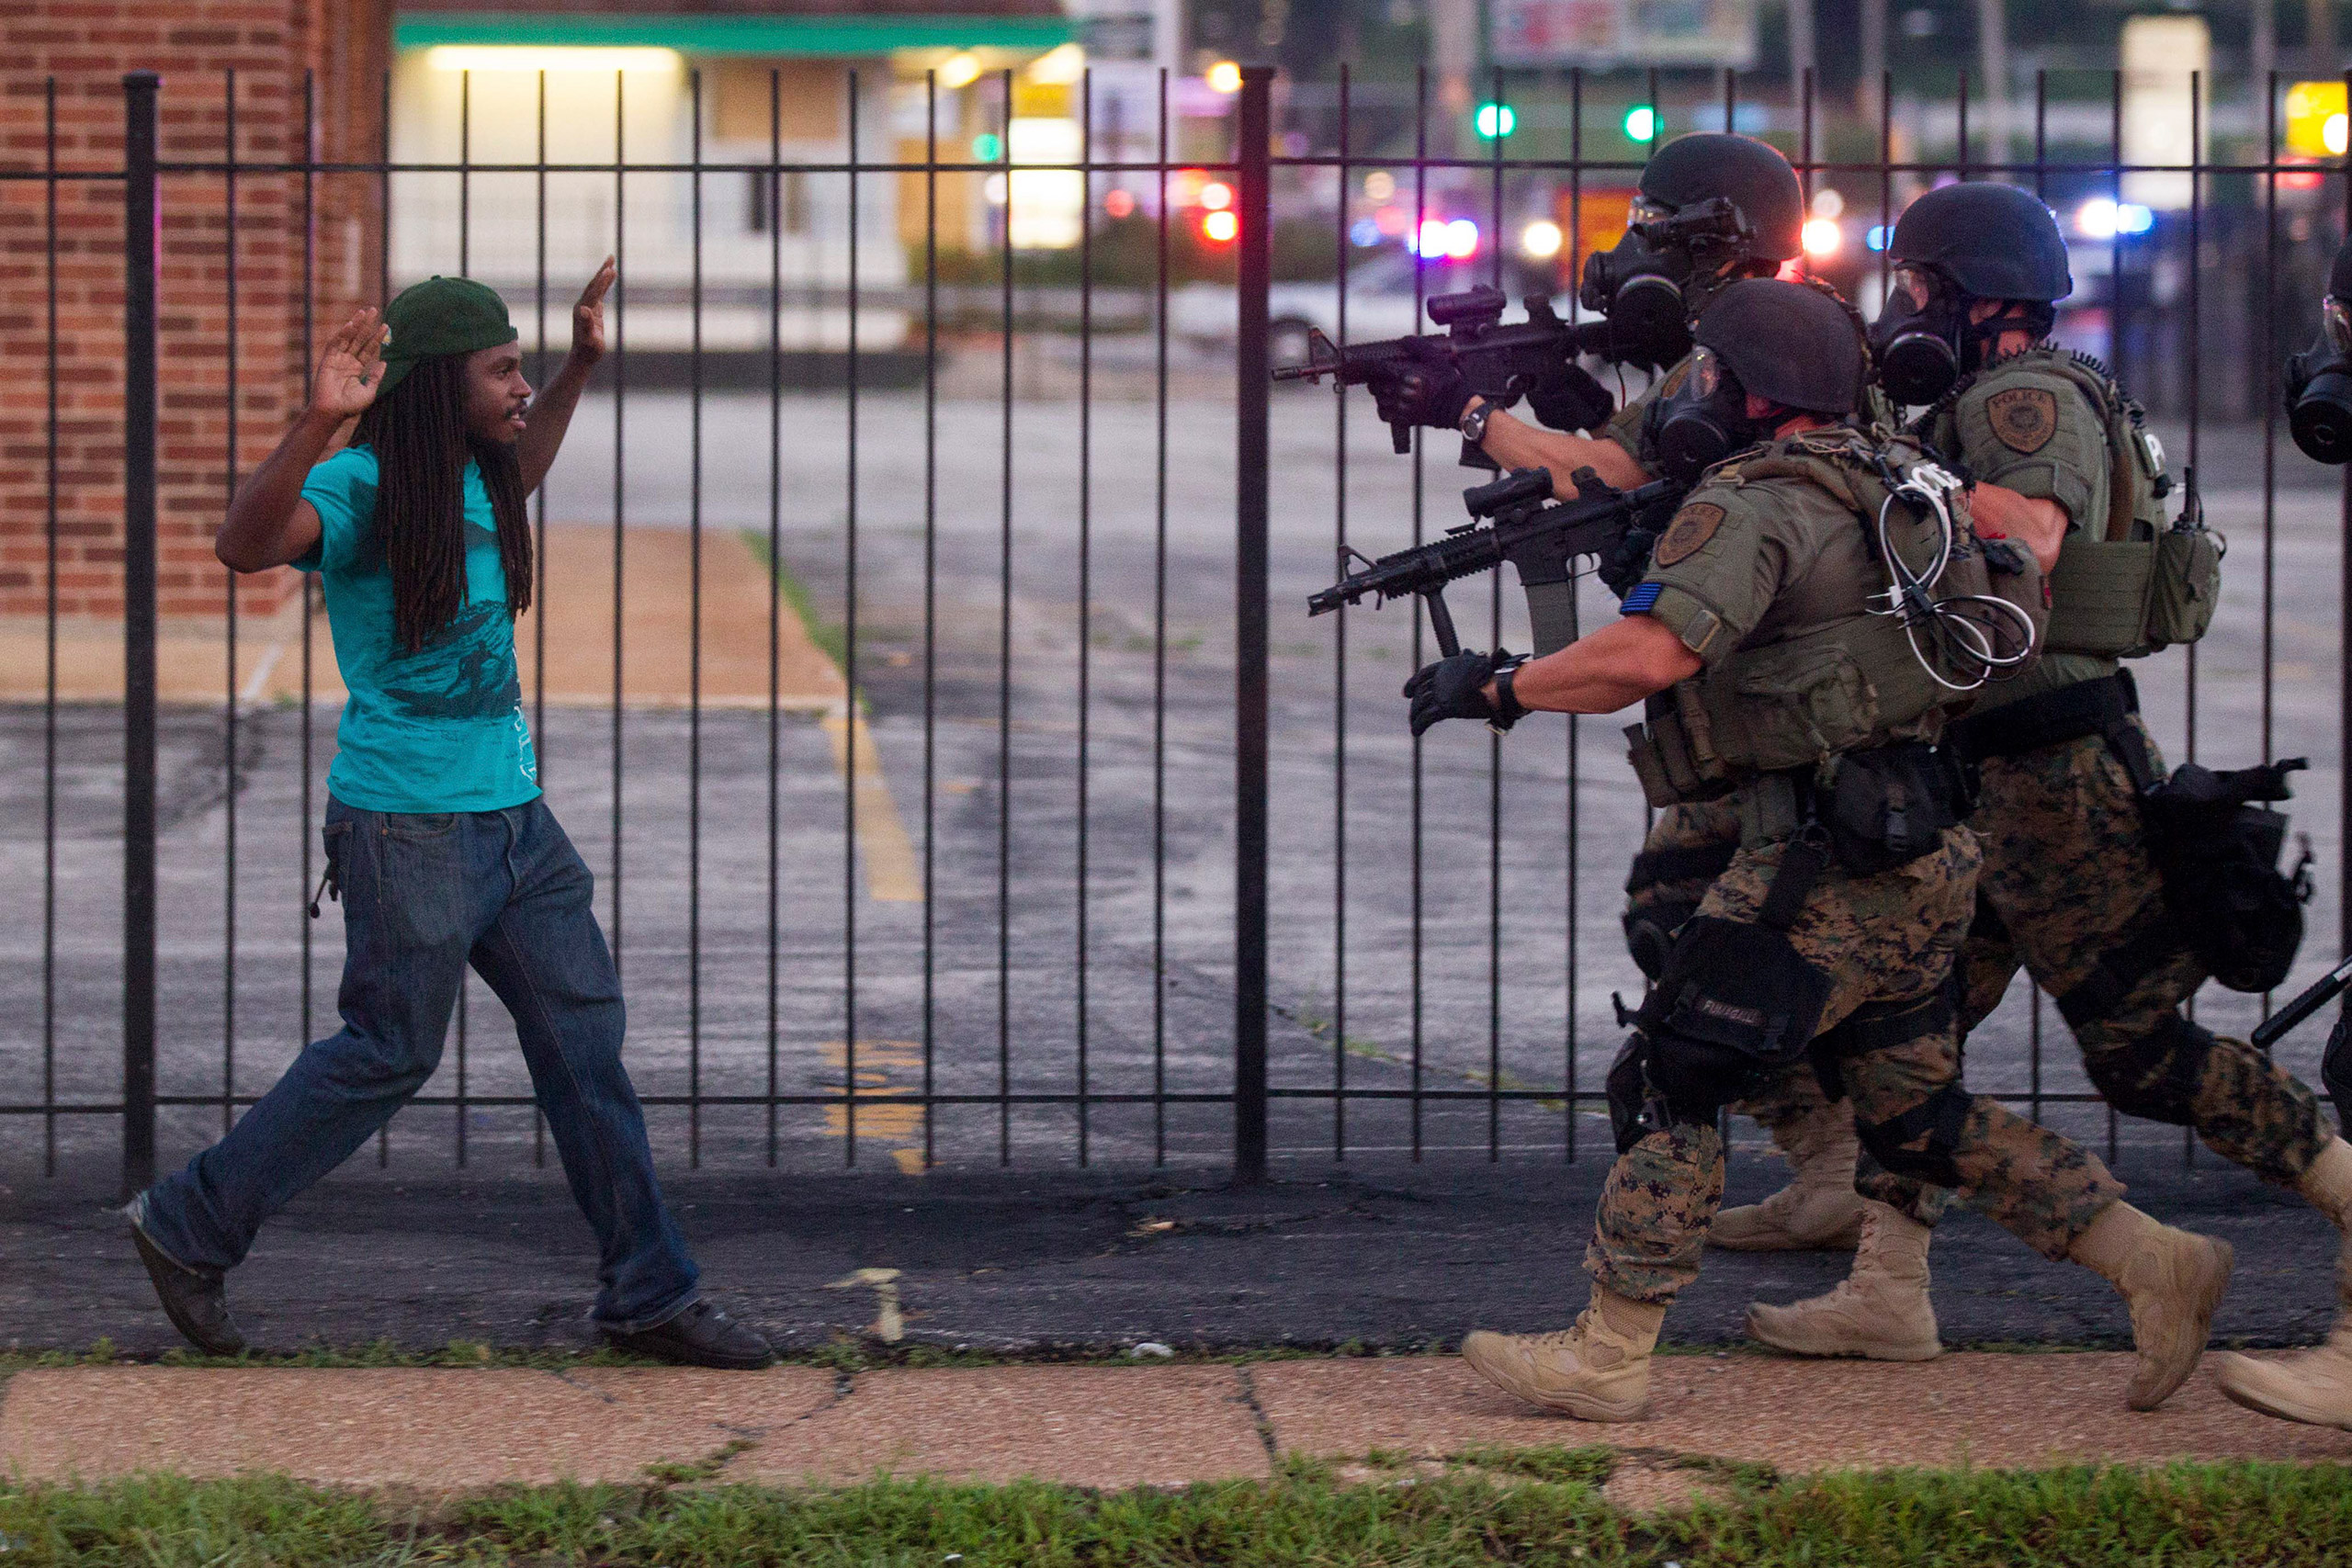 Heavily armed and equipped police confront, and eventually detain, a man during protests two days after the fatal shooting of Michael Brown by a police officer, in Ferguson, Mo., Aug. 11, 2014.